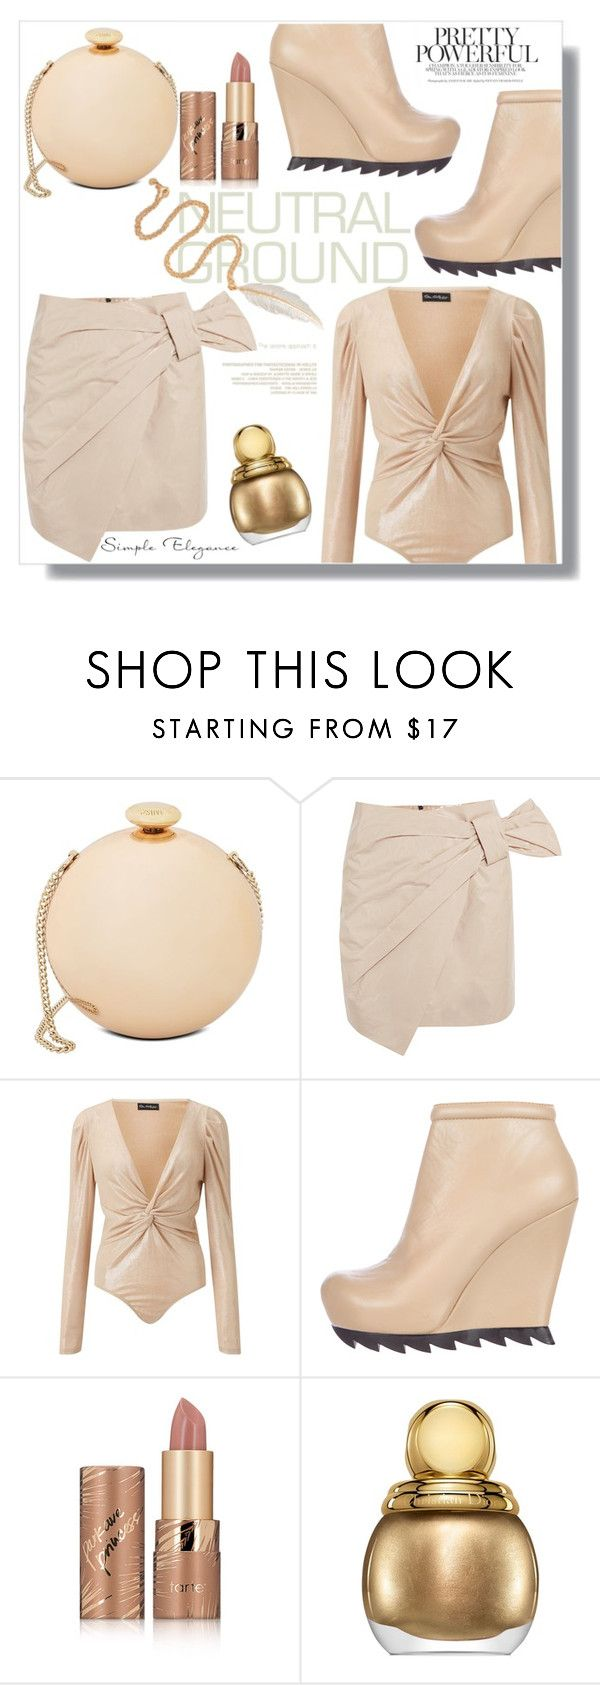 """""""Neutrals"""" by letiperez-reall ❤ liked on Polyvore featuring Love Moschino, Isabel Marant, Miss Selfridge, Camilla Skovgaard, tarte, Christian Dior, LeiVanKash, neutrals, polyvoreeditorial and polyvorecontest"""